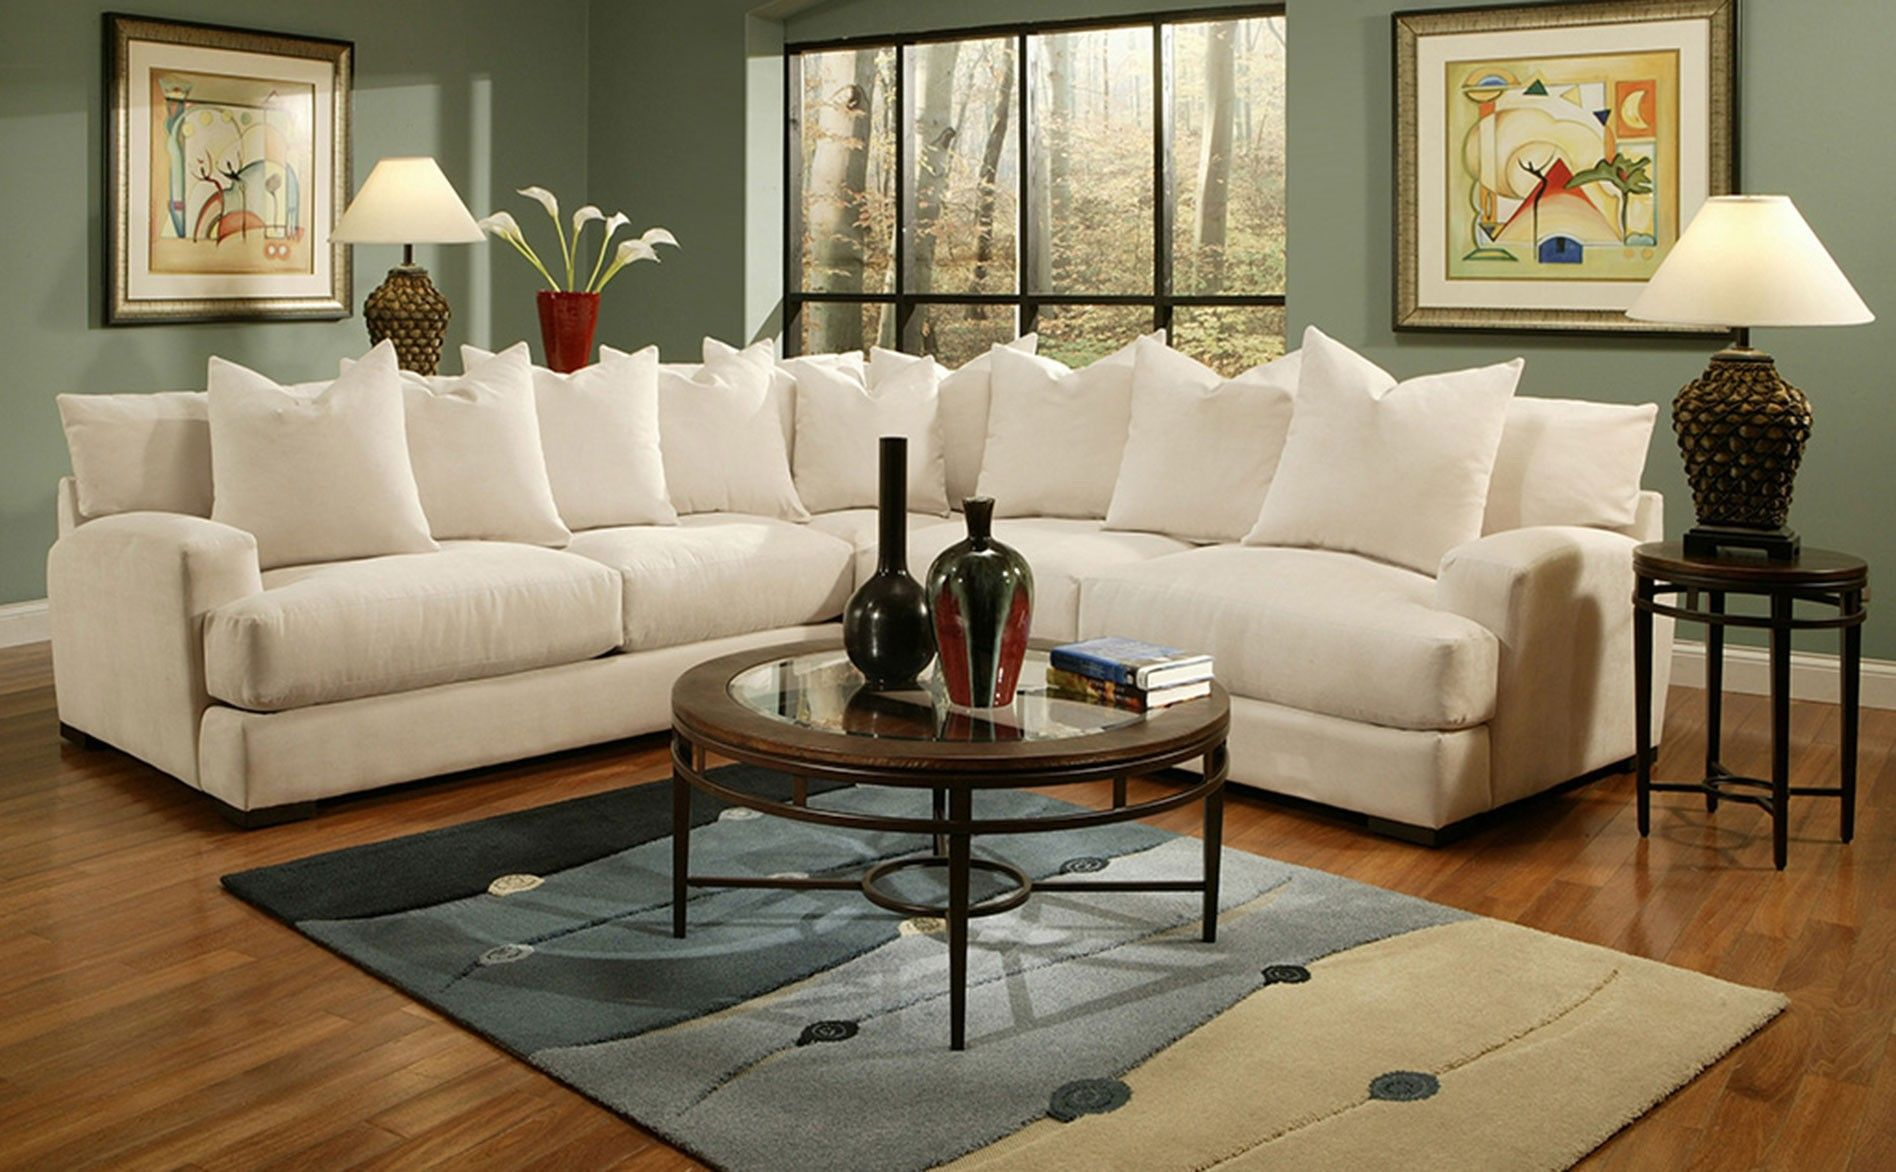 Jonathan Louis Sofa Bed Aico Carlin Sectional Belfore Linen For The